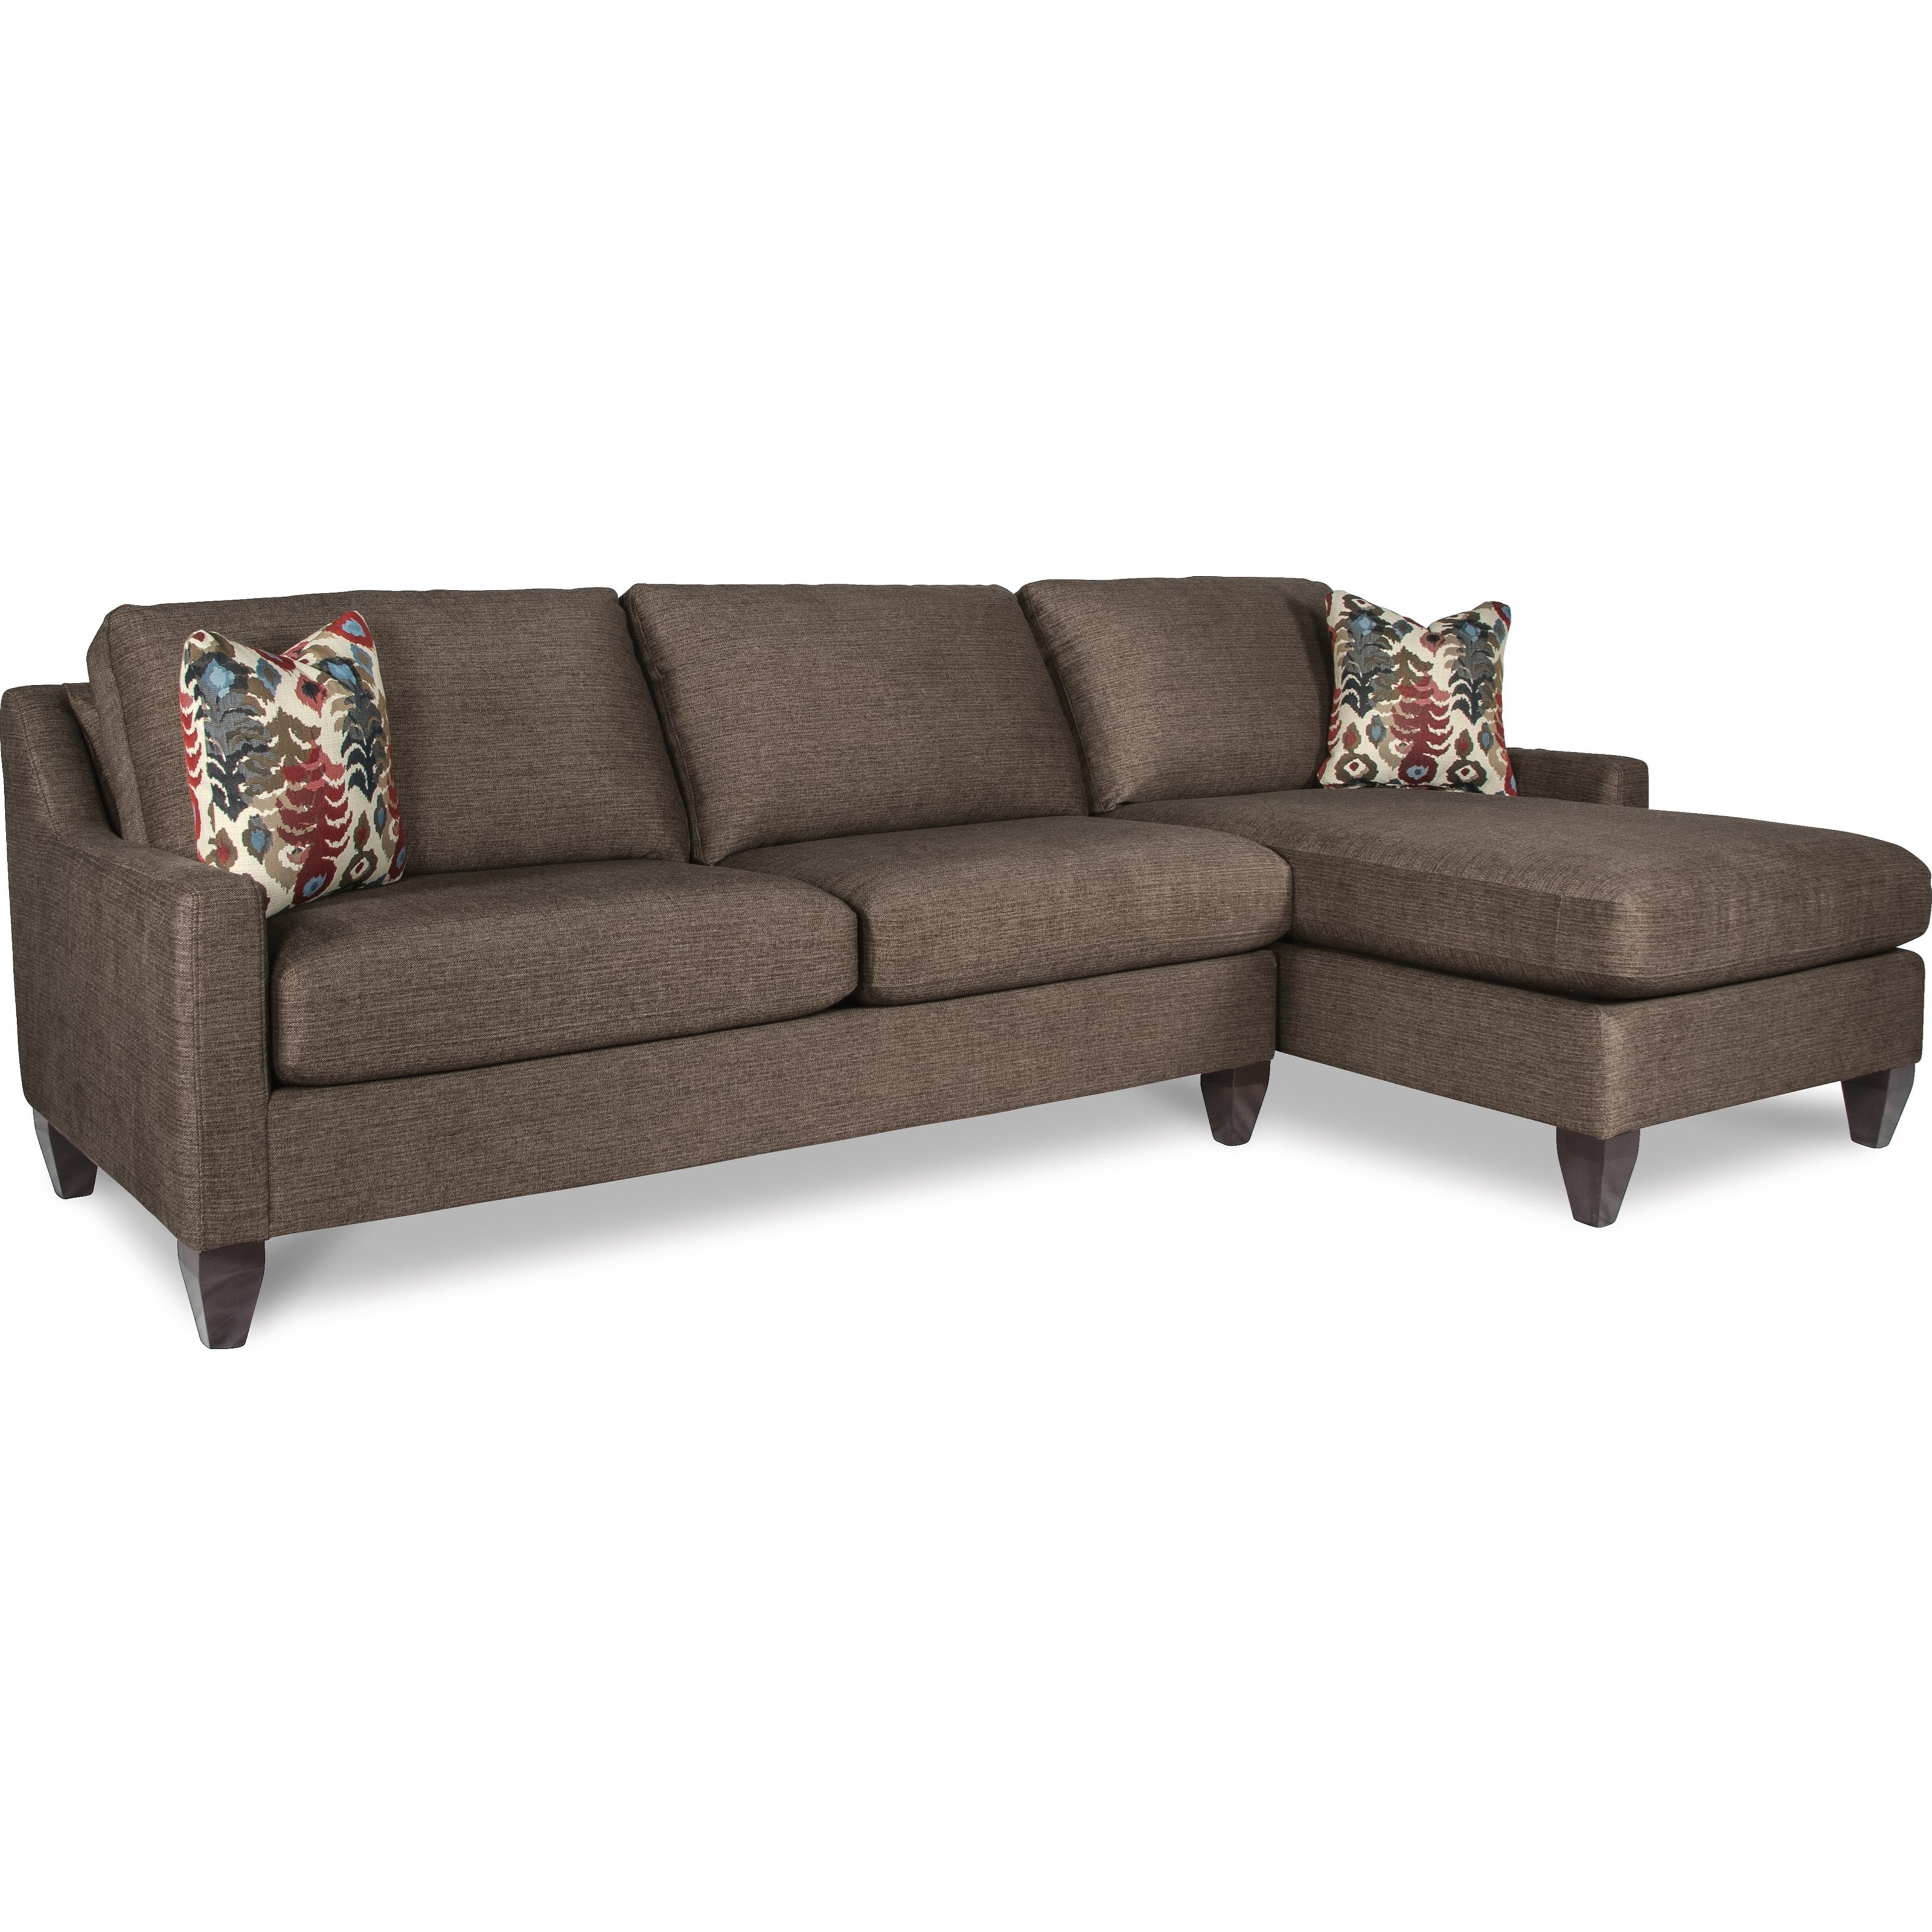 La z boy studio contemporary two piece sectional sofa w for 2 piece sectional with chaise lounge